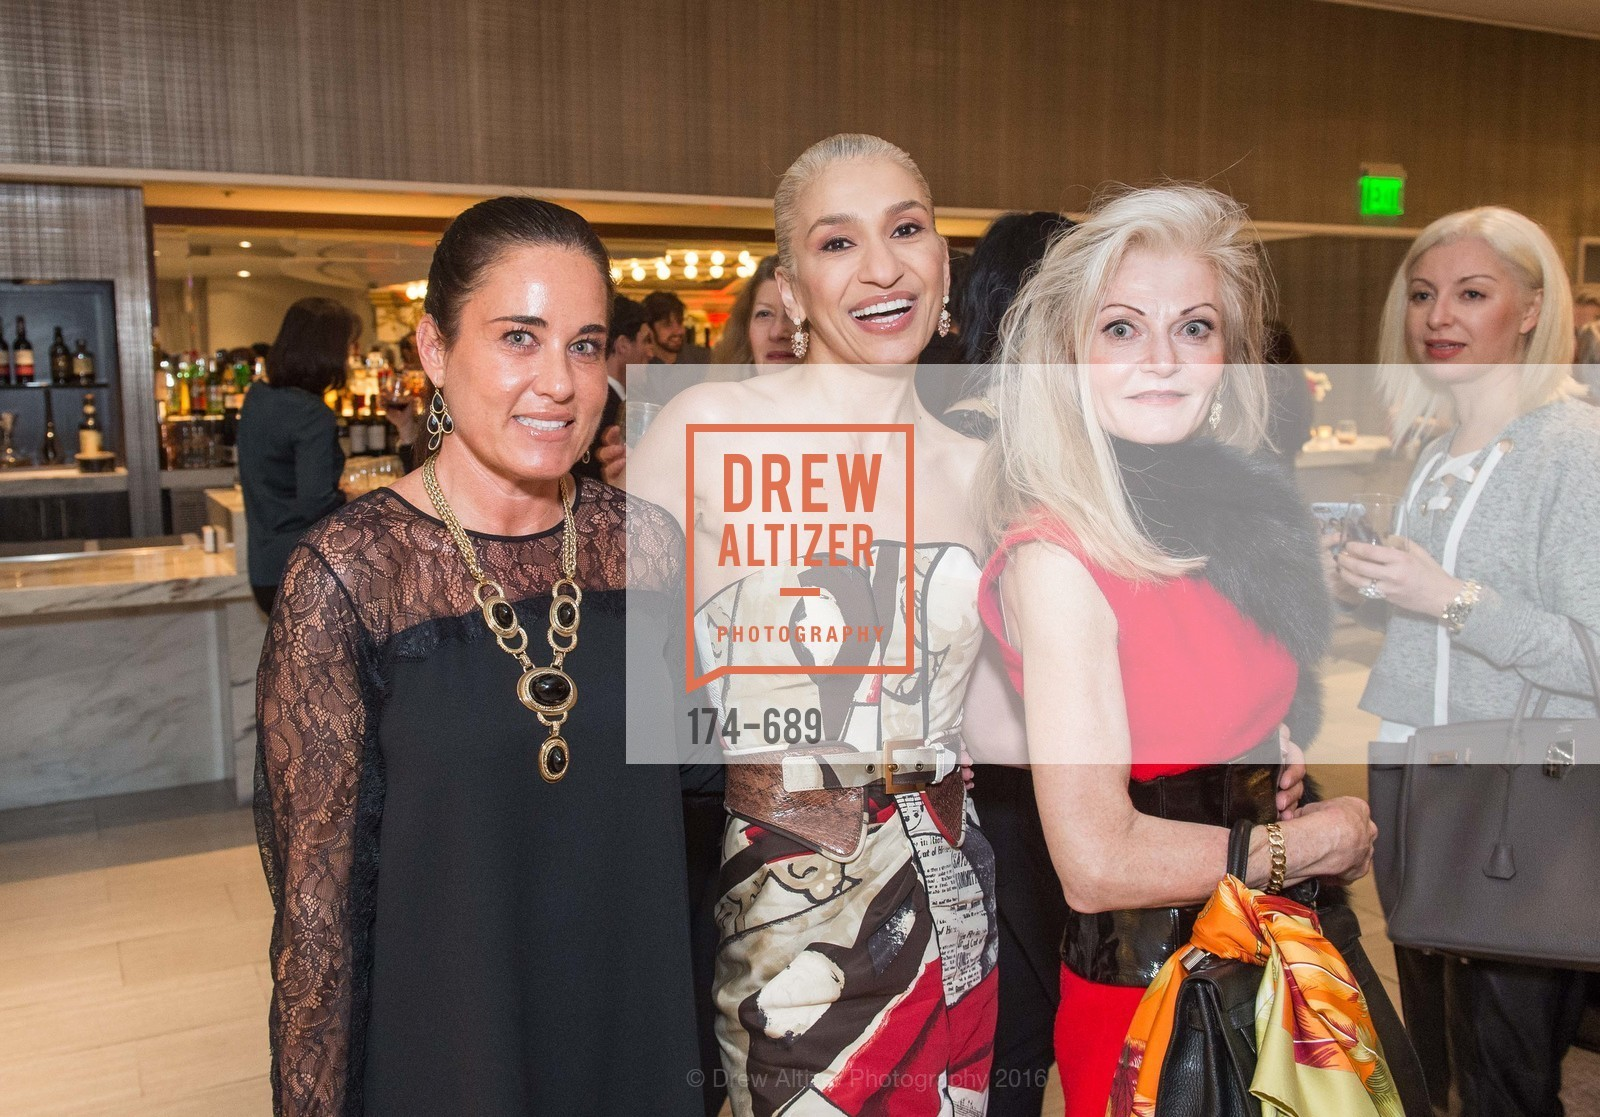 Natalia Urrutia, Navid Armstrong, Diane Carlson, Oscar de la Renta Cocktail Party with Boaz Mazor, The Rotunda Restaurant, January 19th, 2016,Drew Altizer, Drew Altizer Photography, full-service agency, private events, San Francisco photographer, photographer california